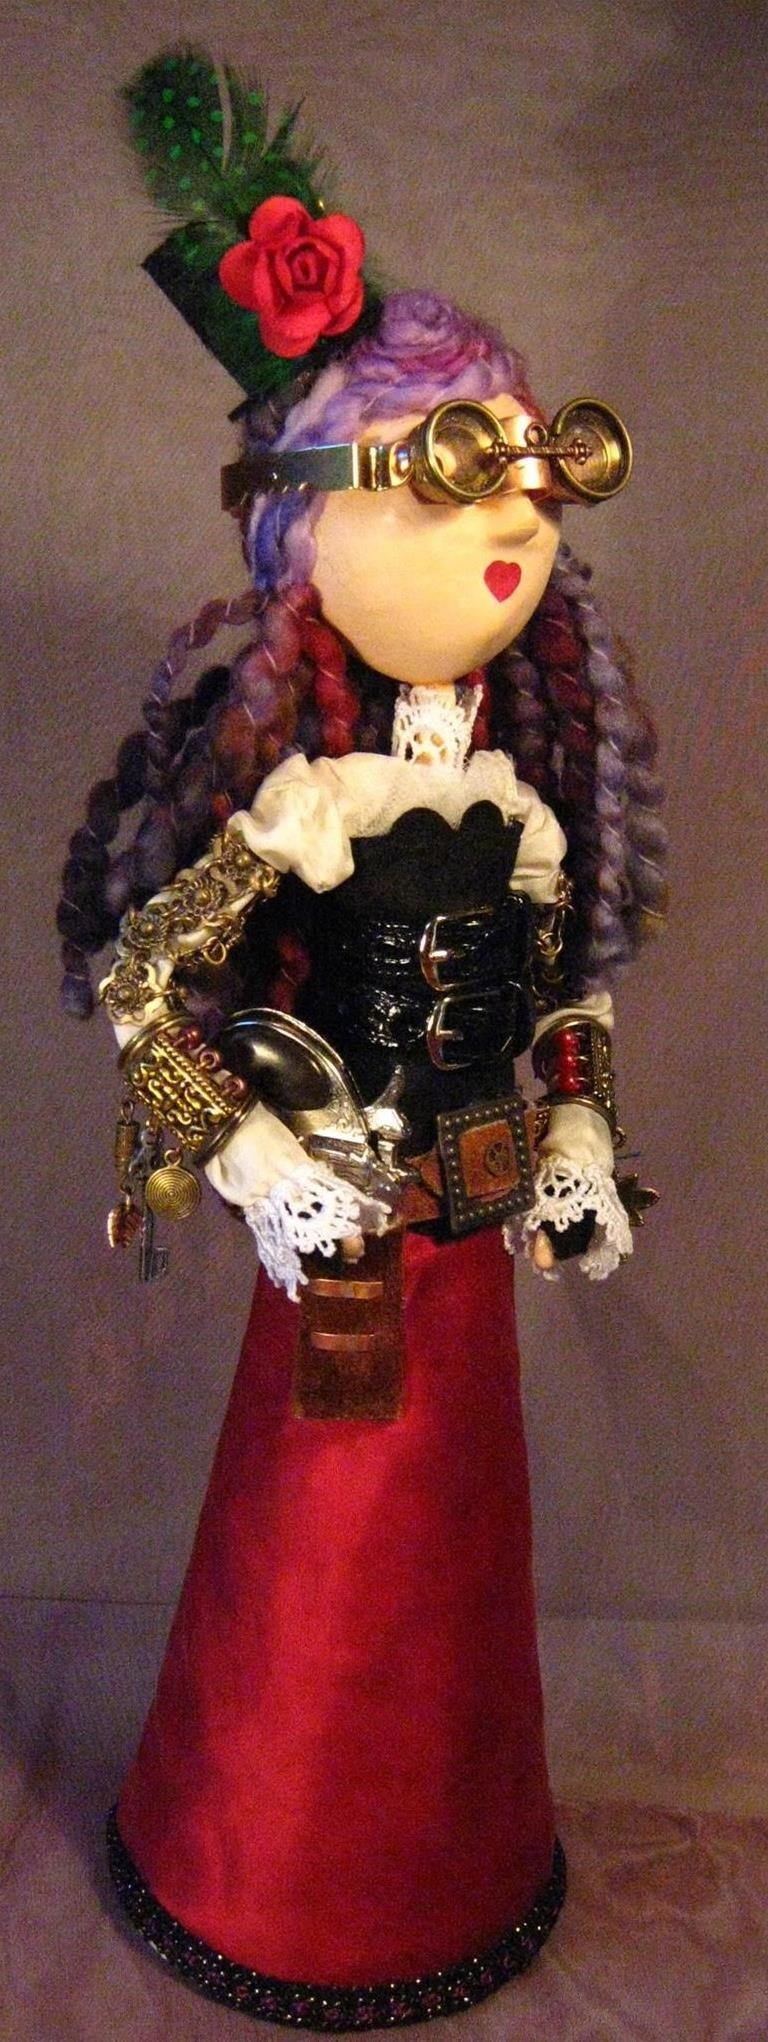 Steampunk Art Doll